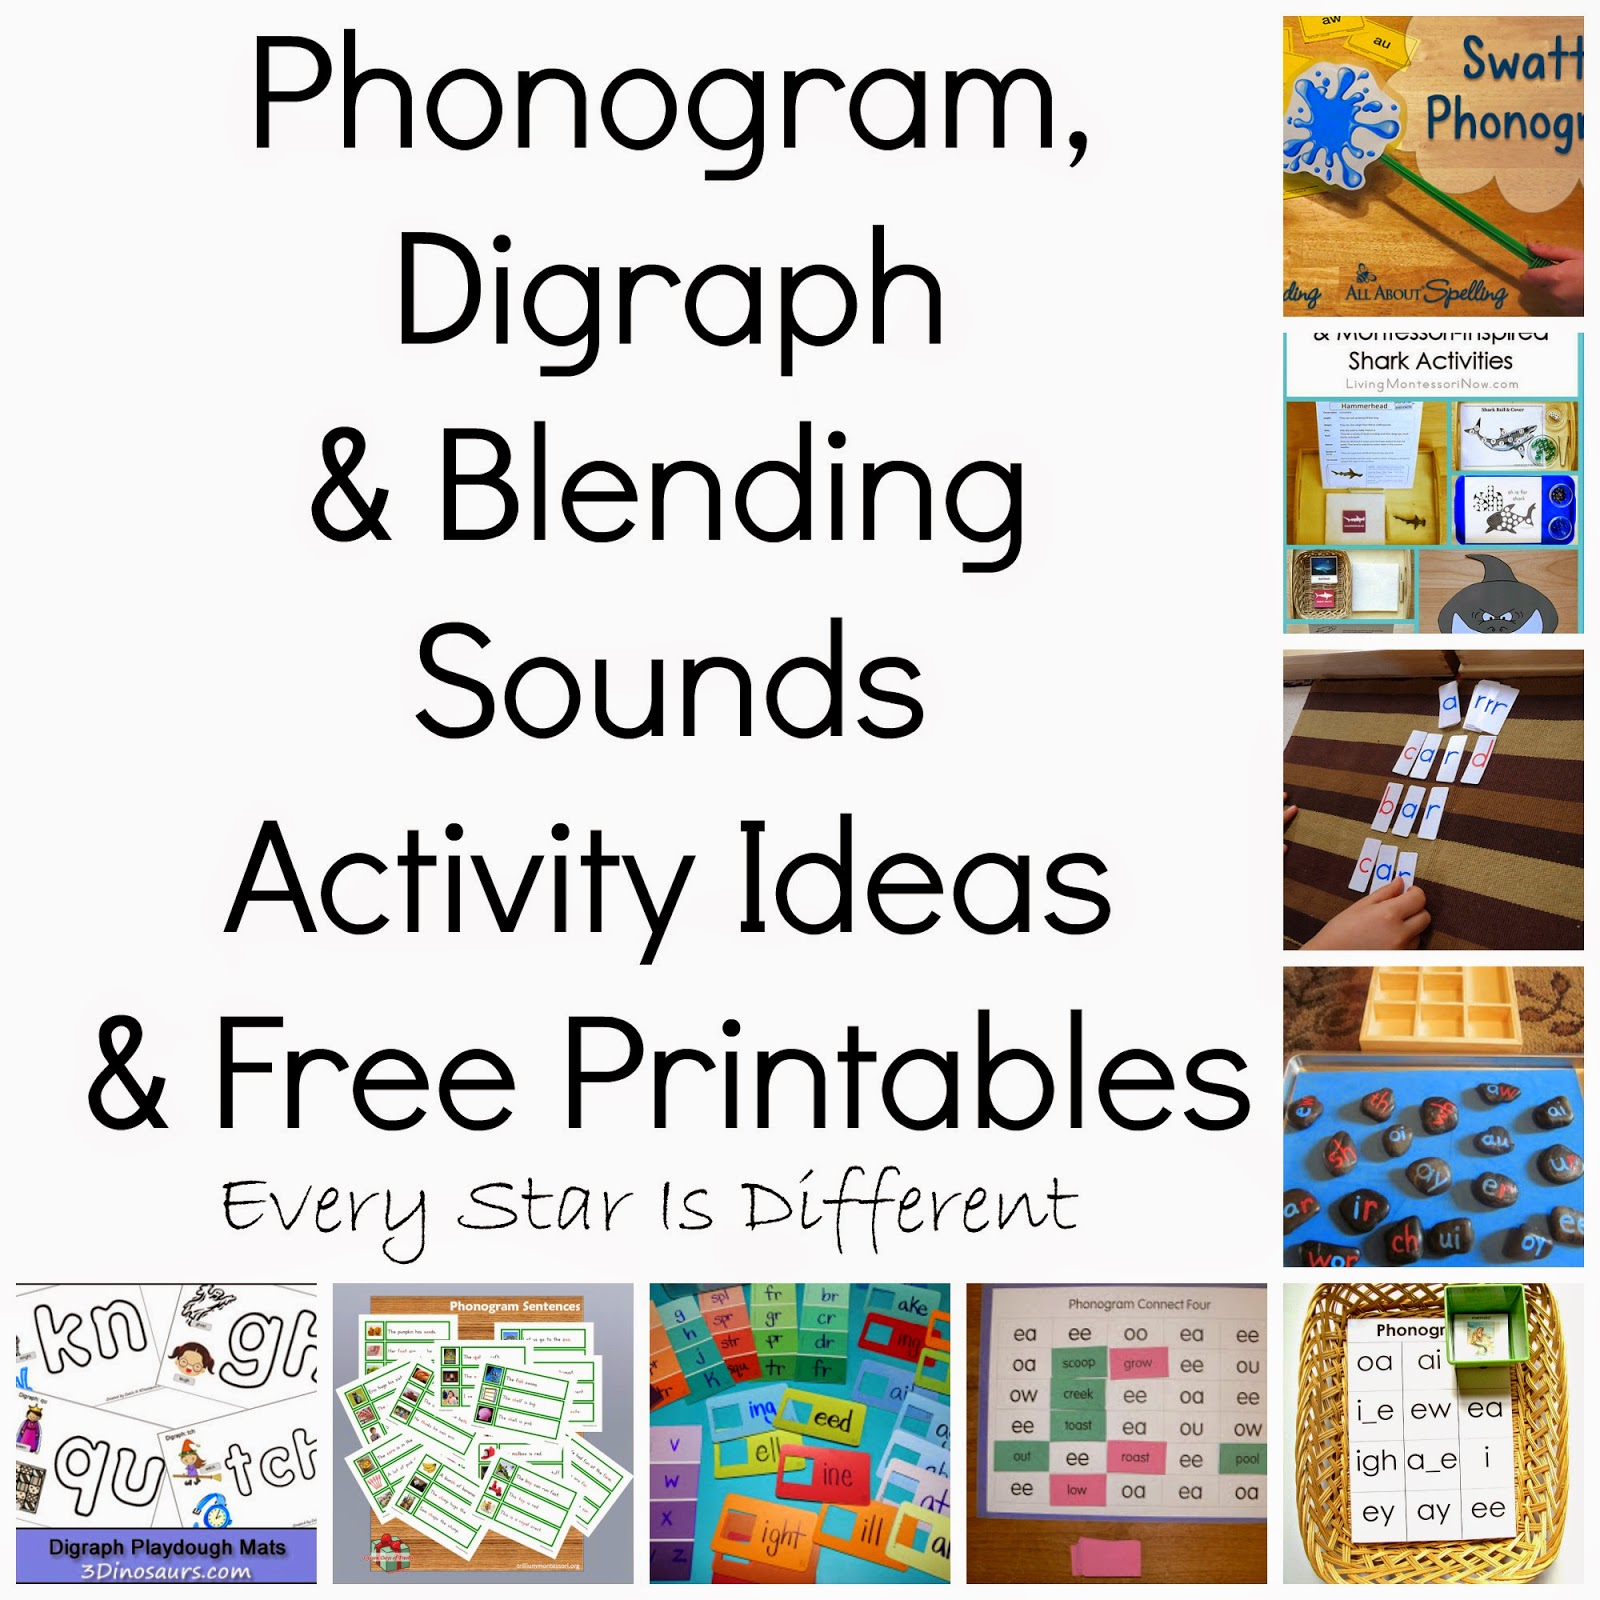 Phonogram Digraph Amp Blending Sounds Activity Ideas Amp Free